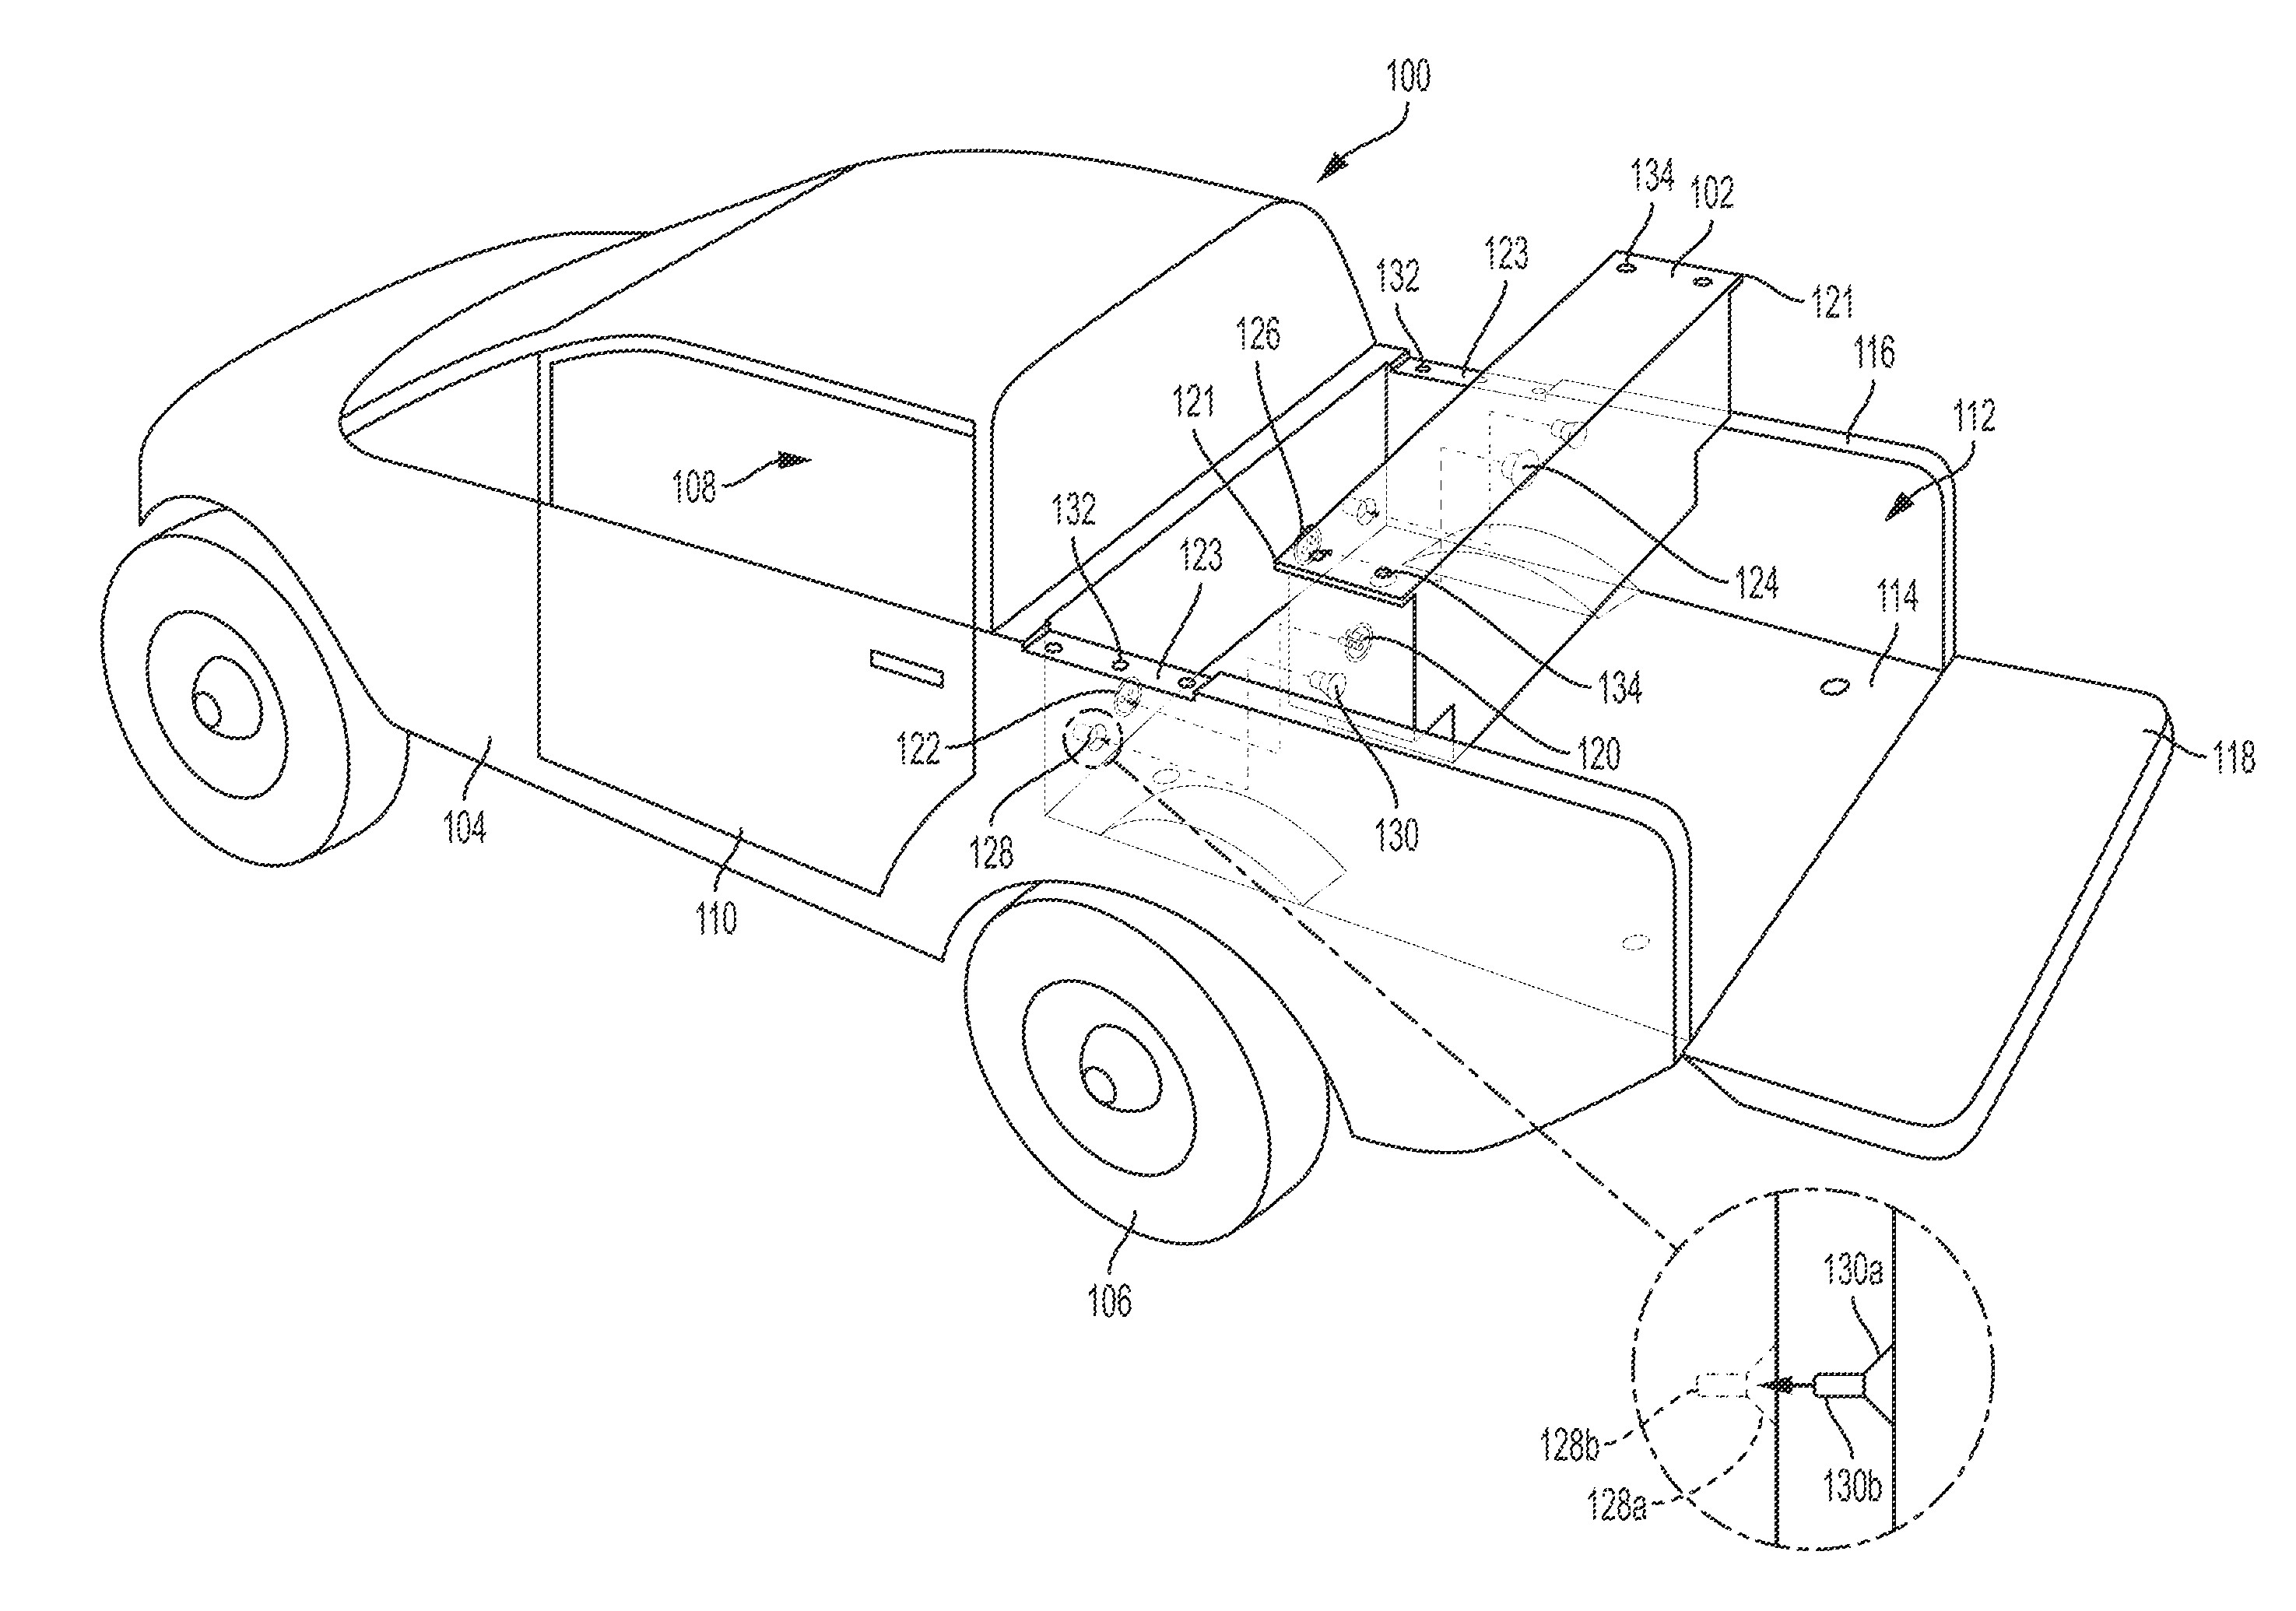 rivian-aux-battery-patent-2